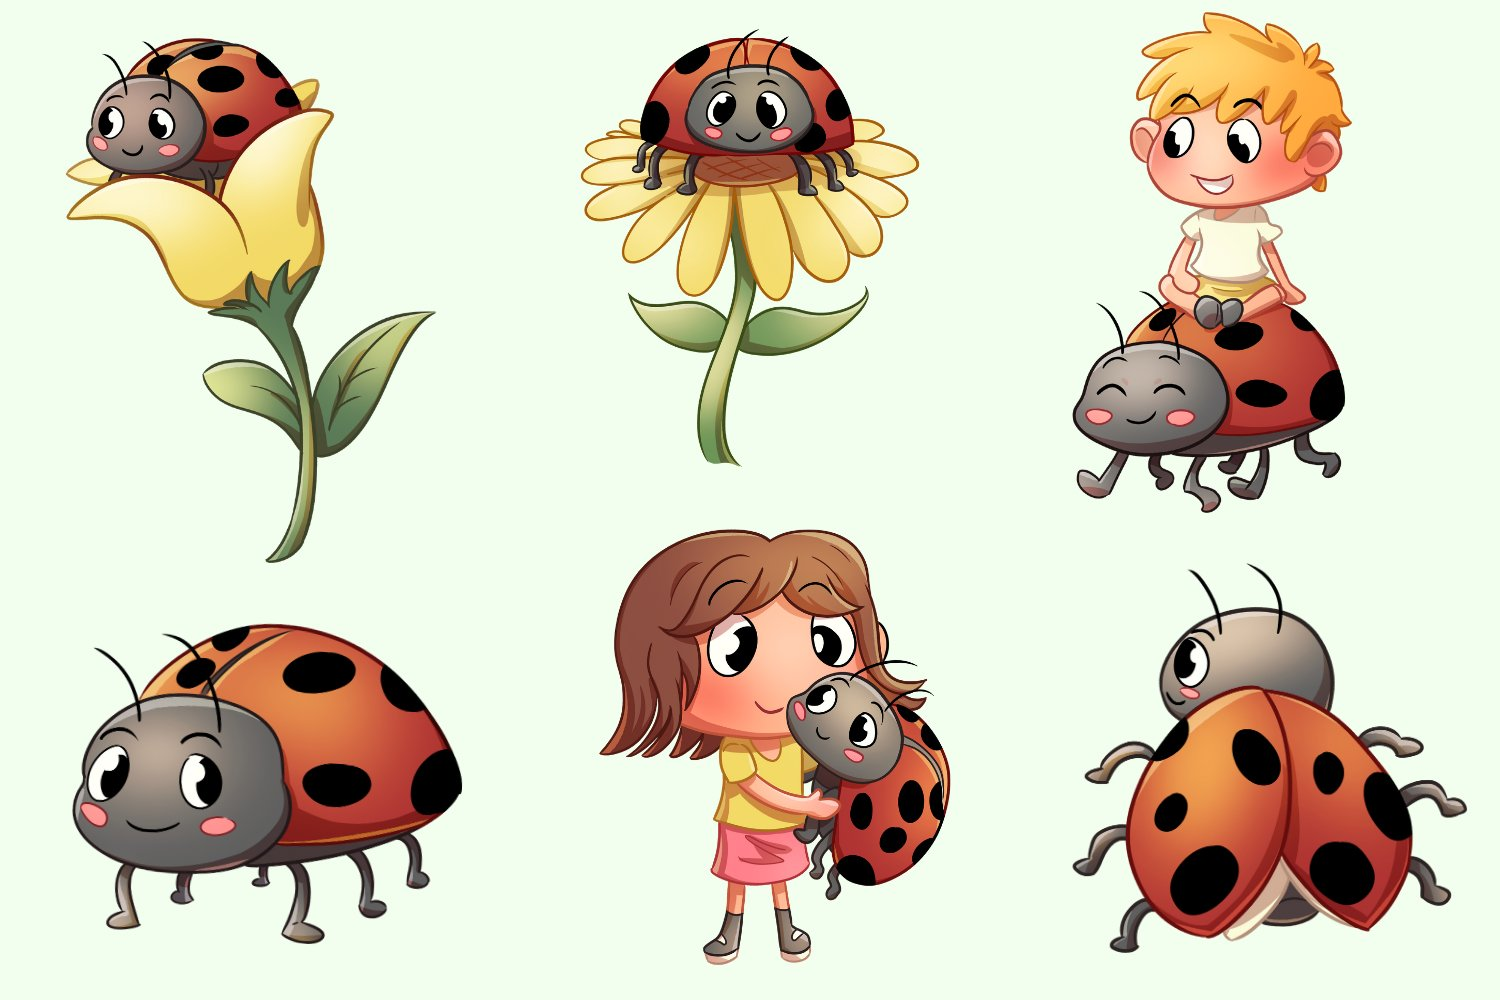 Lady Bug Friends Cute Illustrations example image 3